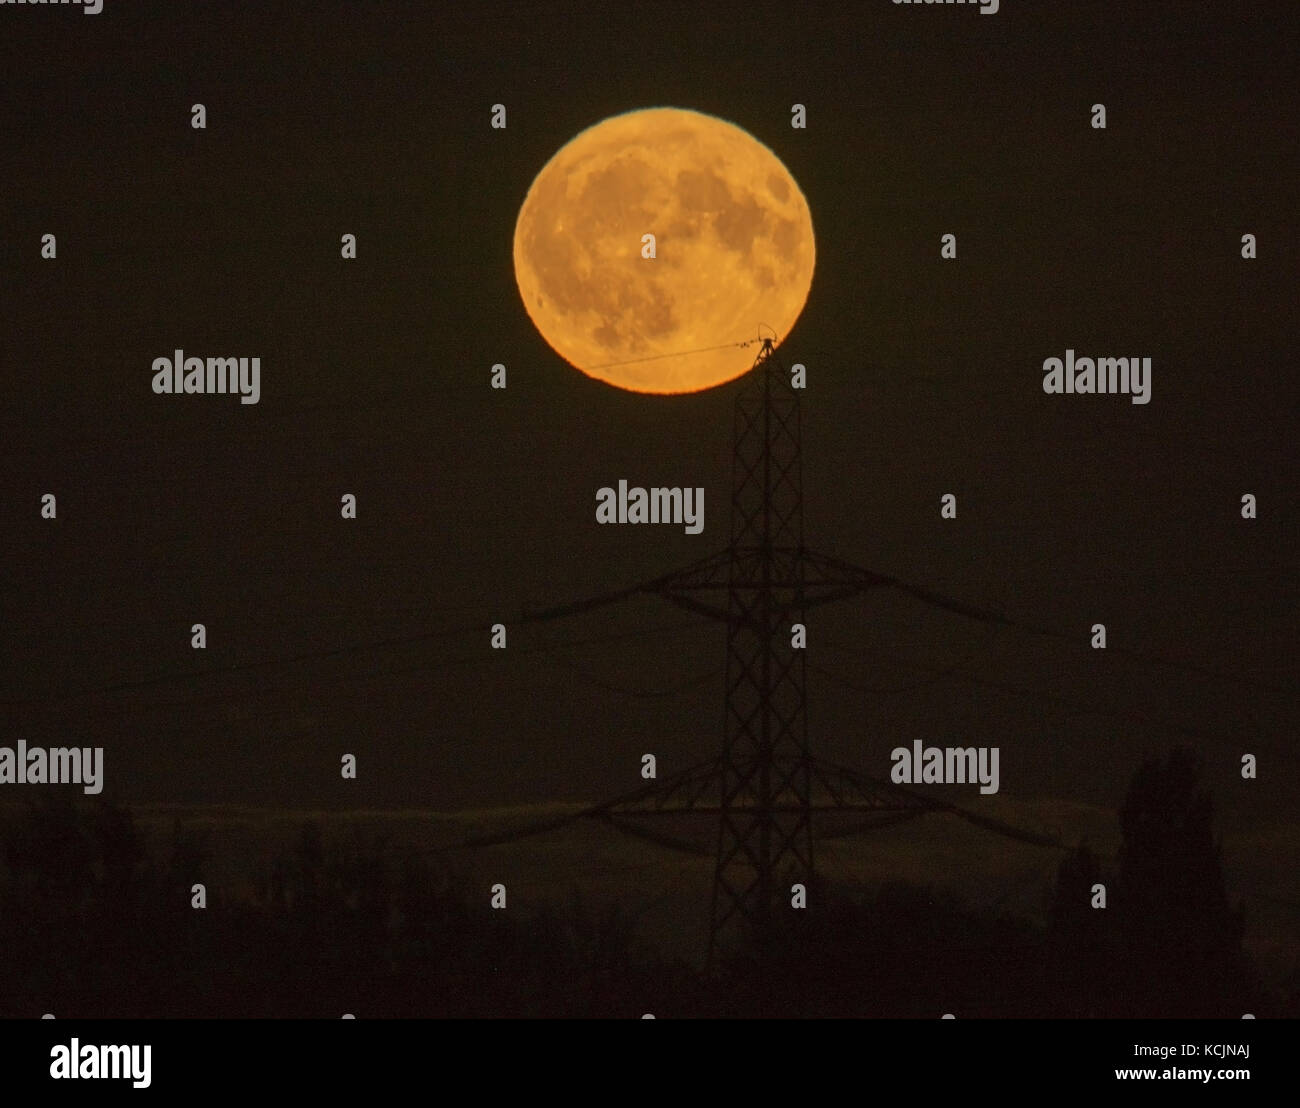 London, UK. 5th Oct, 2017. UK Weather. Waning Gibbous Harvest Moon, the first full moon rising closest to the autumn - Stock Image